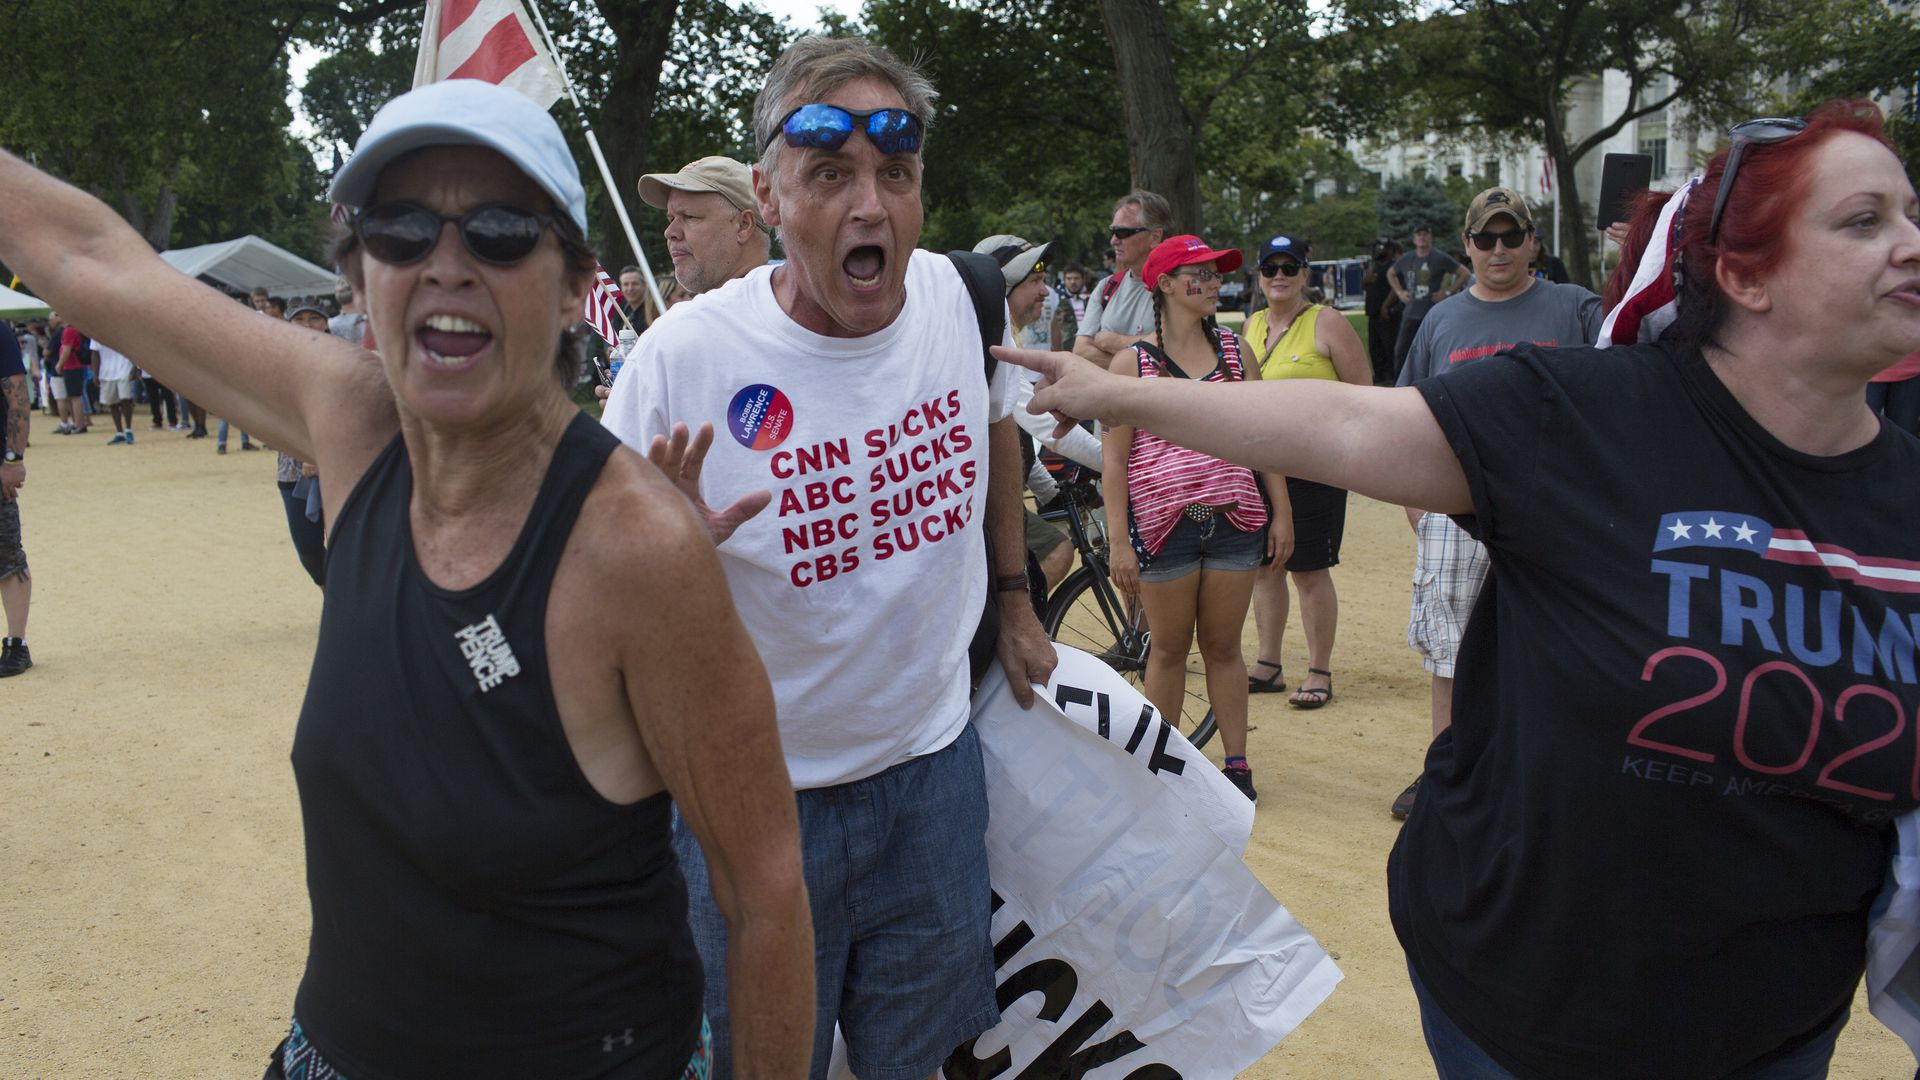 Supporters of U.S. President Donald Trump scream at the media as they gather for what was billed as 'The Mother of all Rallies' on September 16, 2017